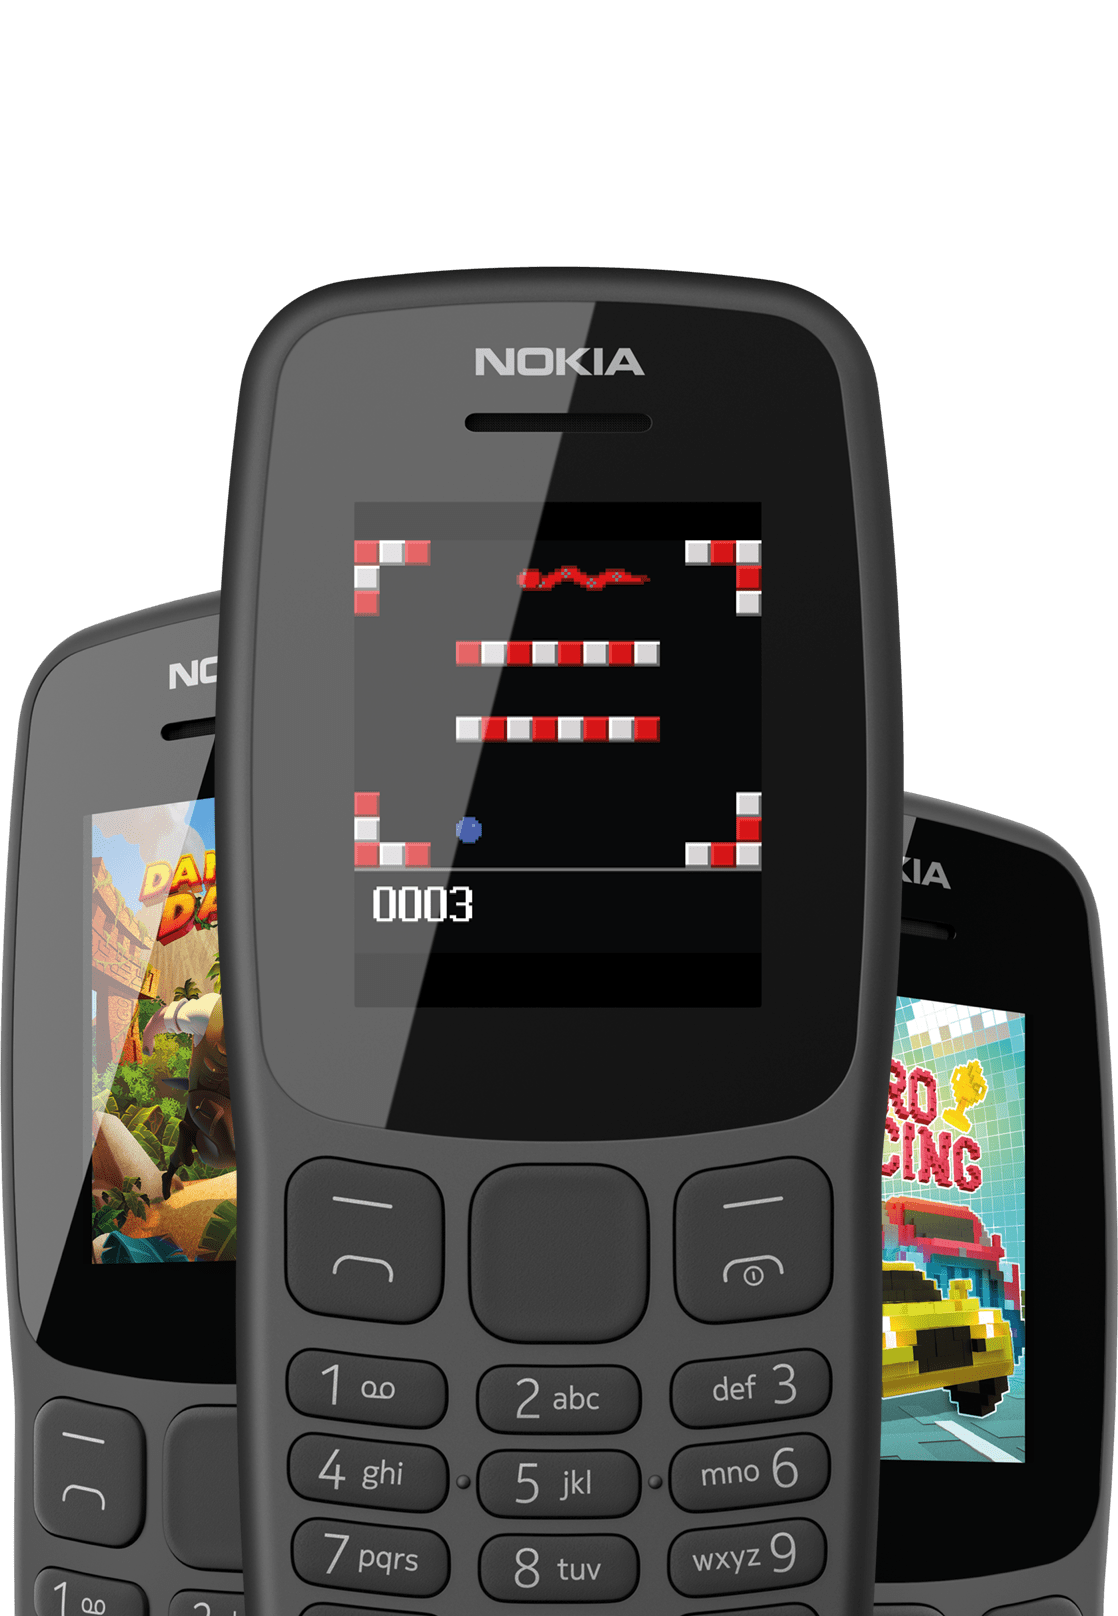 Nokia 106 feature-phone